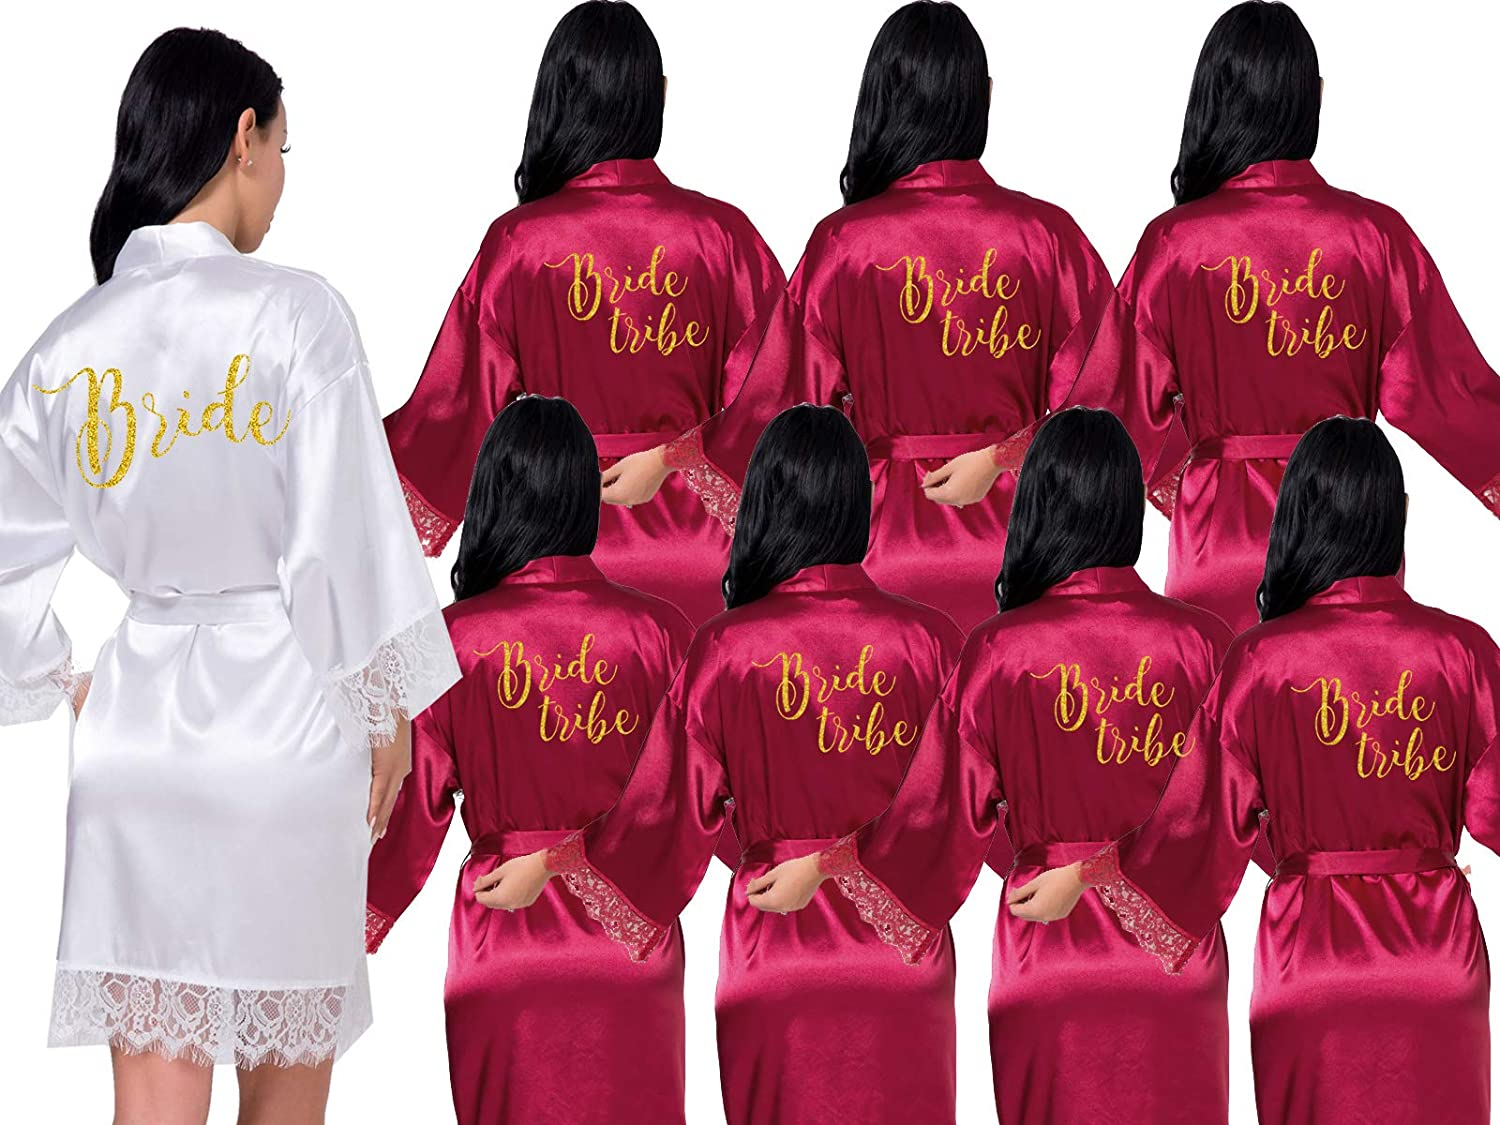 Lace Bridal Robe Bride Gift Robes Bridal Shower Gift Set of 5,8,10 Robes(S-XXL